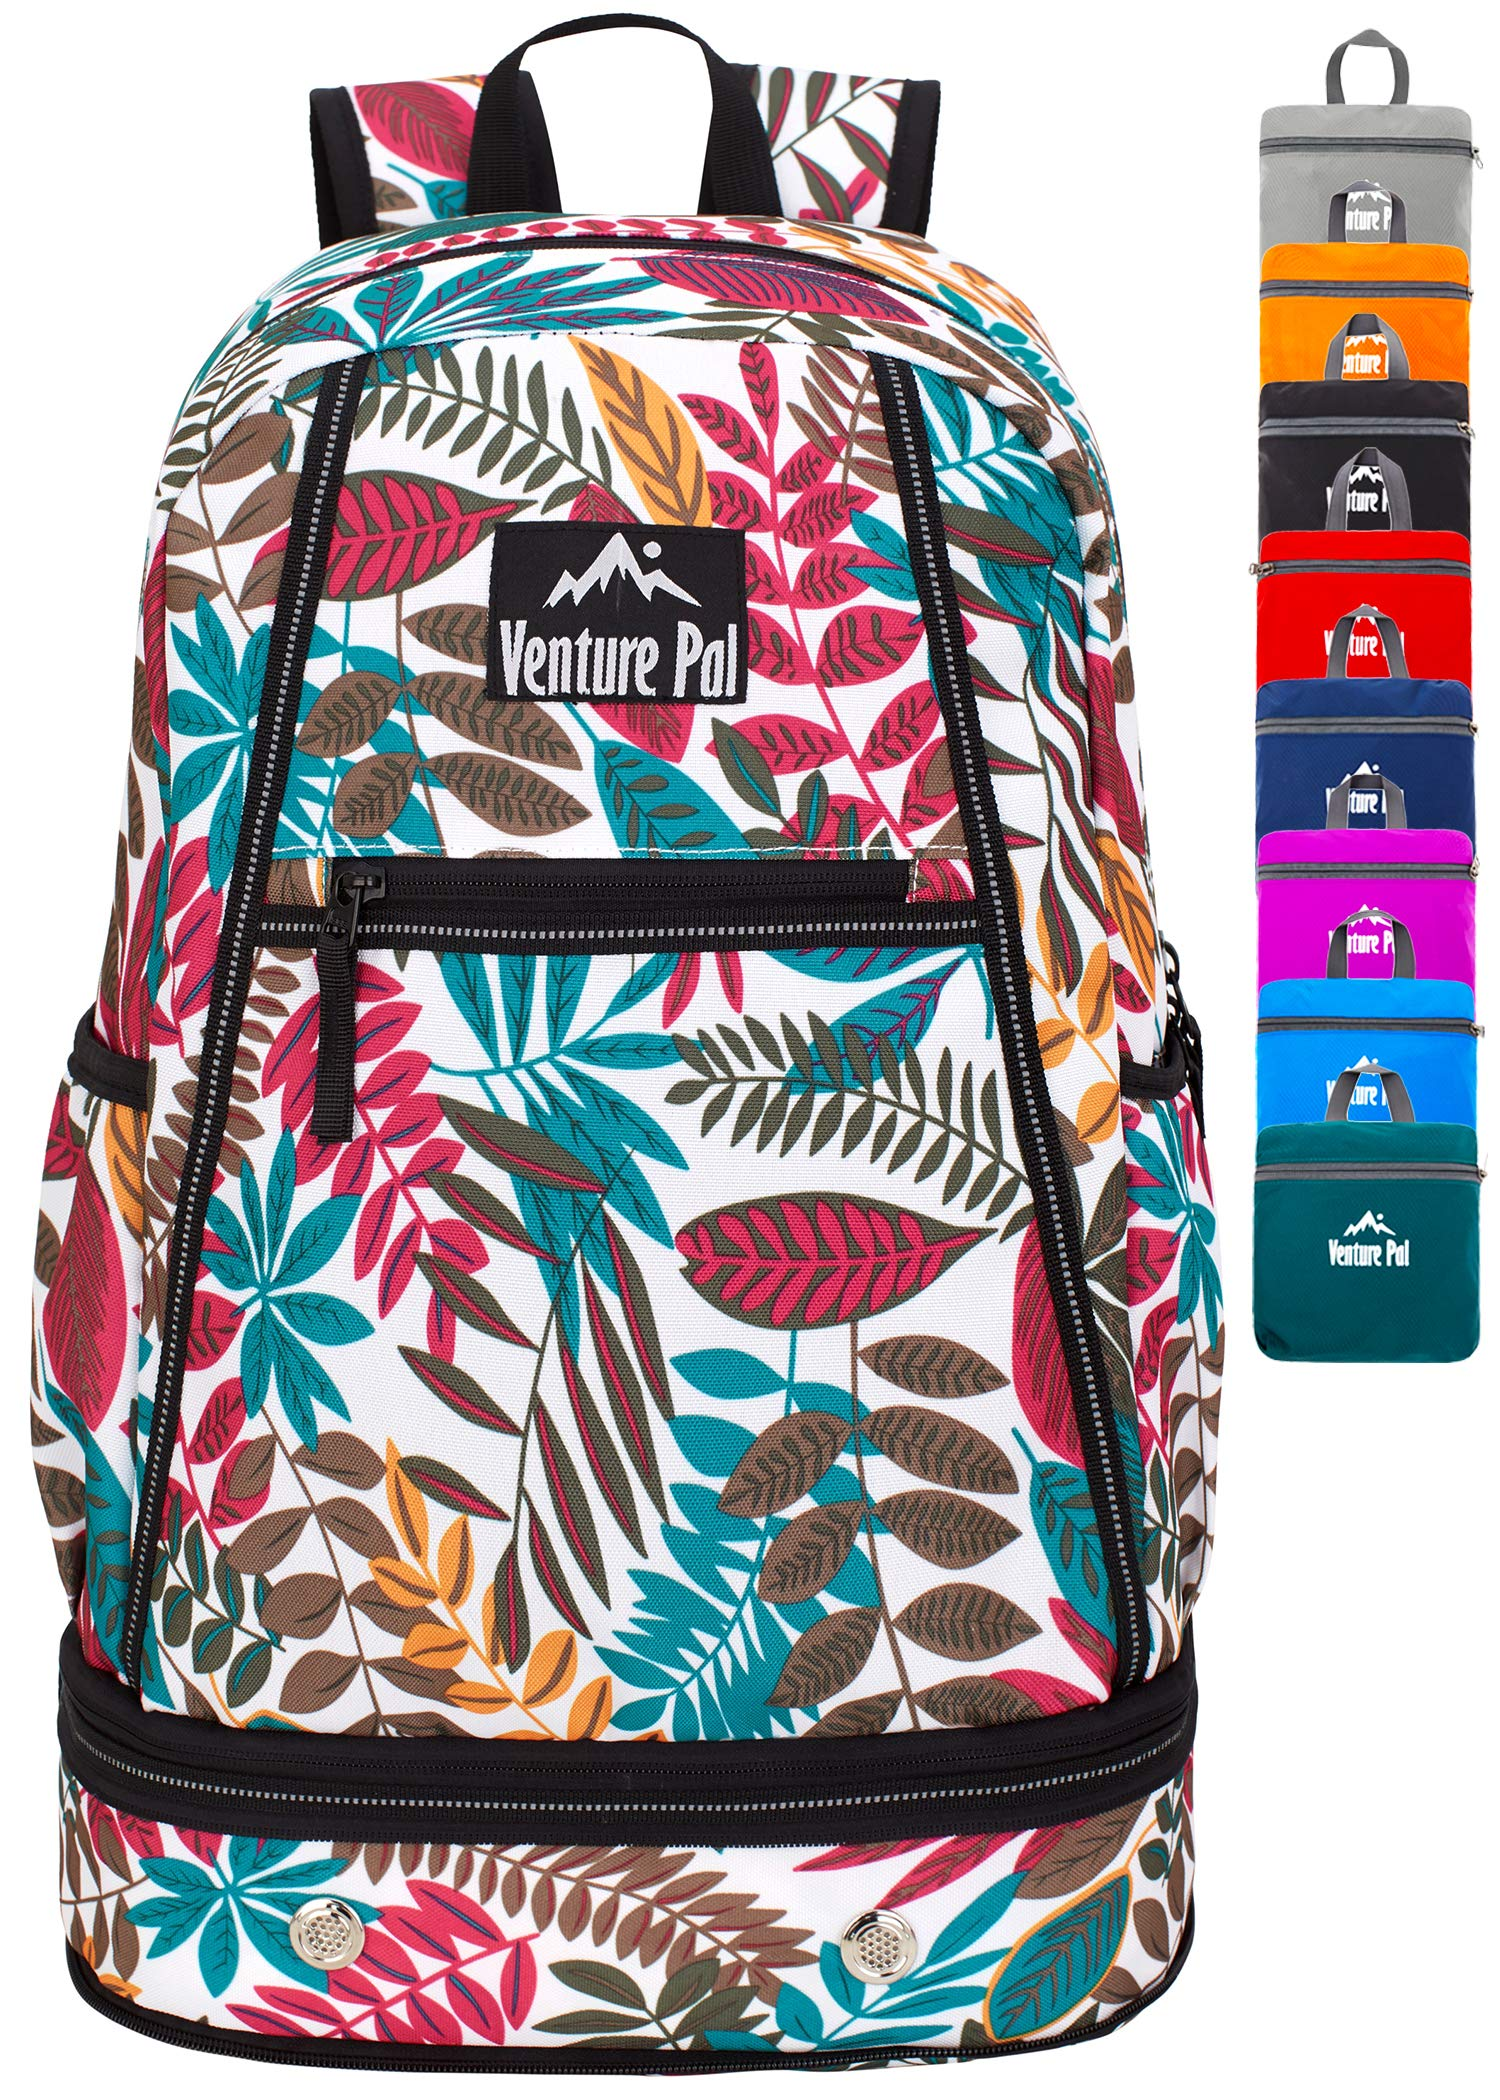 Venture Pal 35L Large Lightweight Packable Hiking Backpack with Wet Pocket & Shoes Compartment Travel Backpack & Day Backpack for Women Mens(White Leaf)